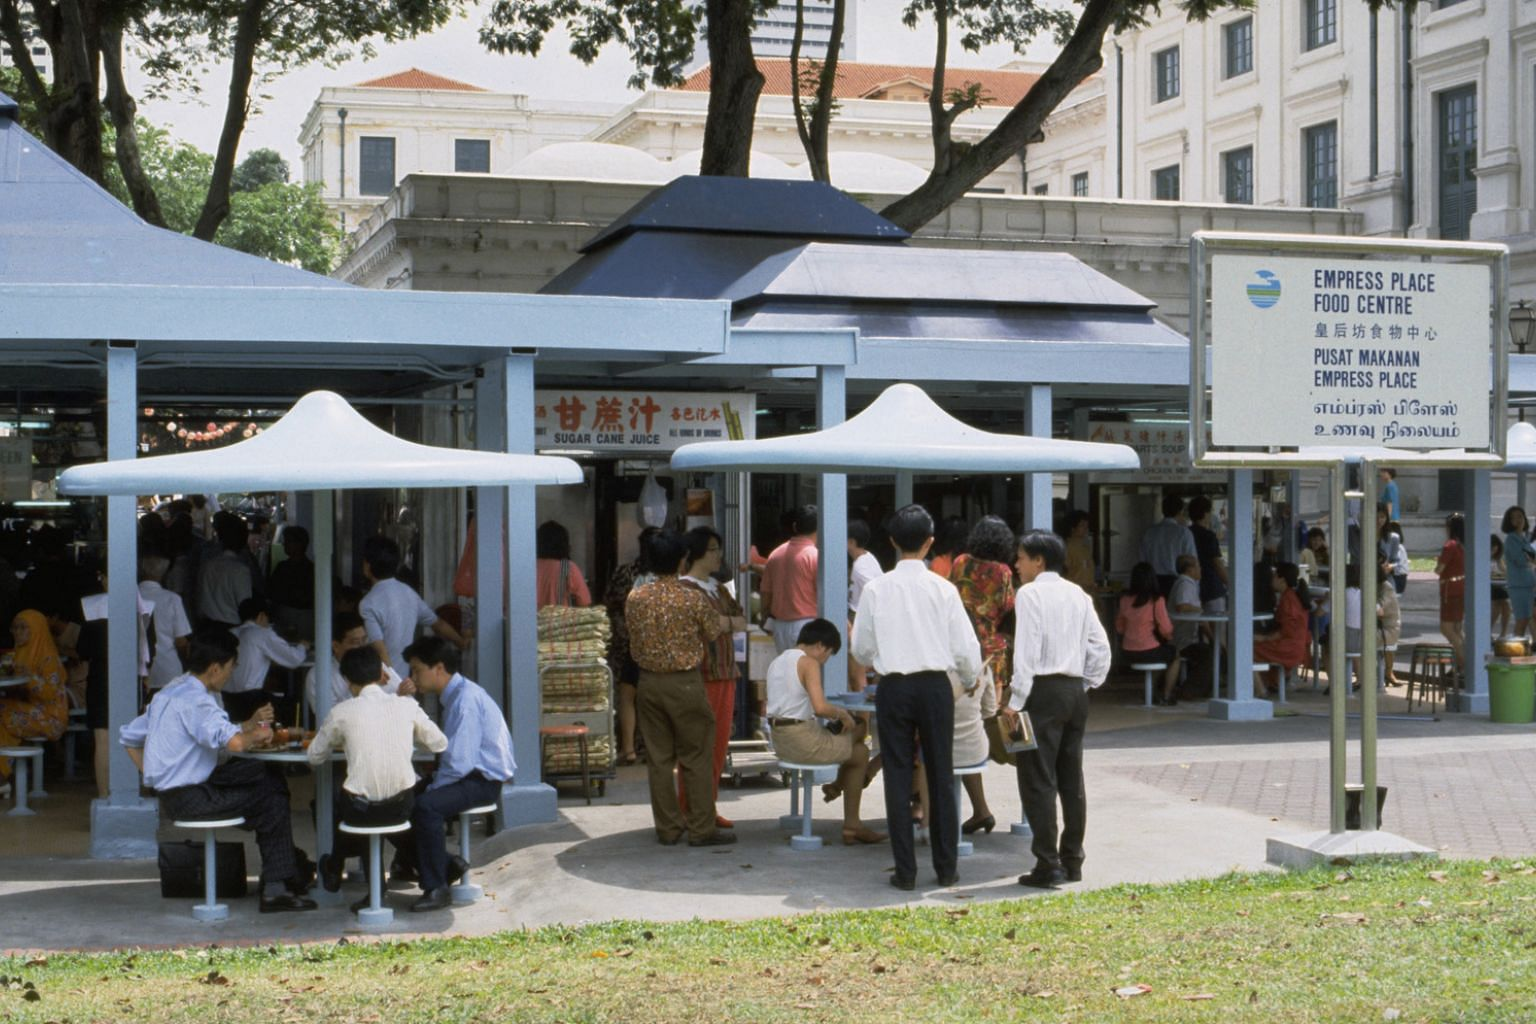 The Empress Place Food Centre along the Singapore River was opened in 1973 and demolished 10 years later. Hawker stalls will make a comeback in the area during this year's Singapore Heritage Festival.